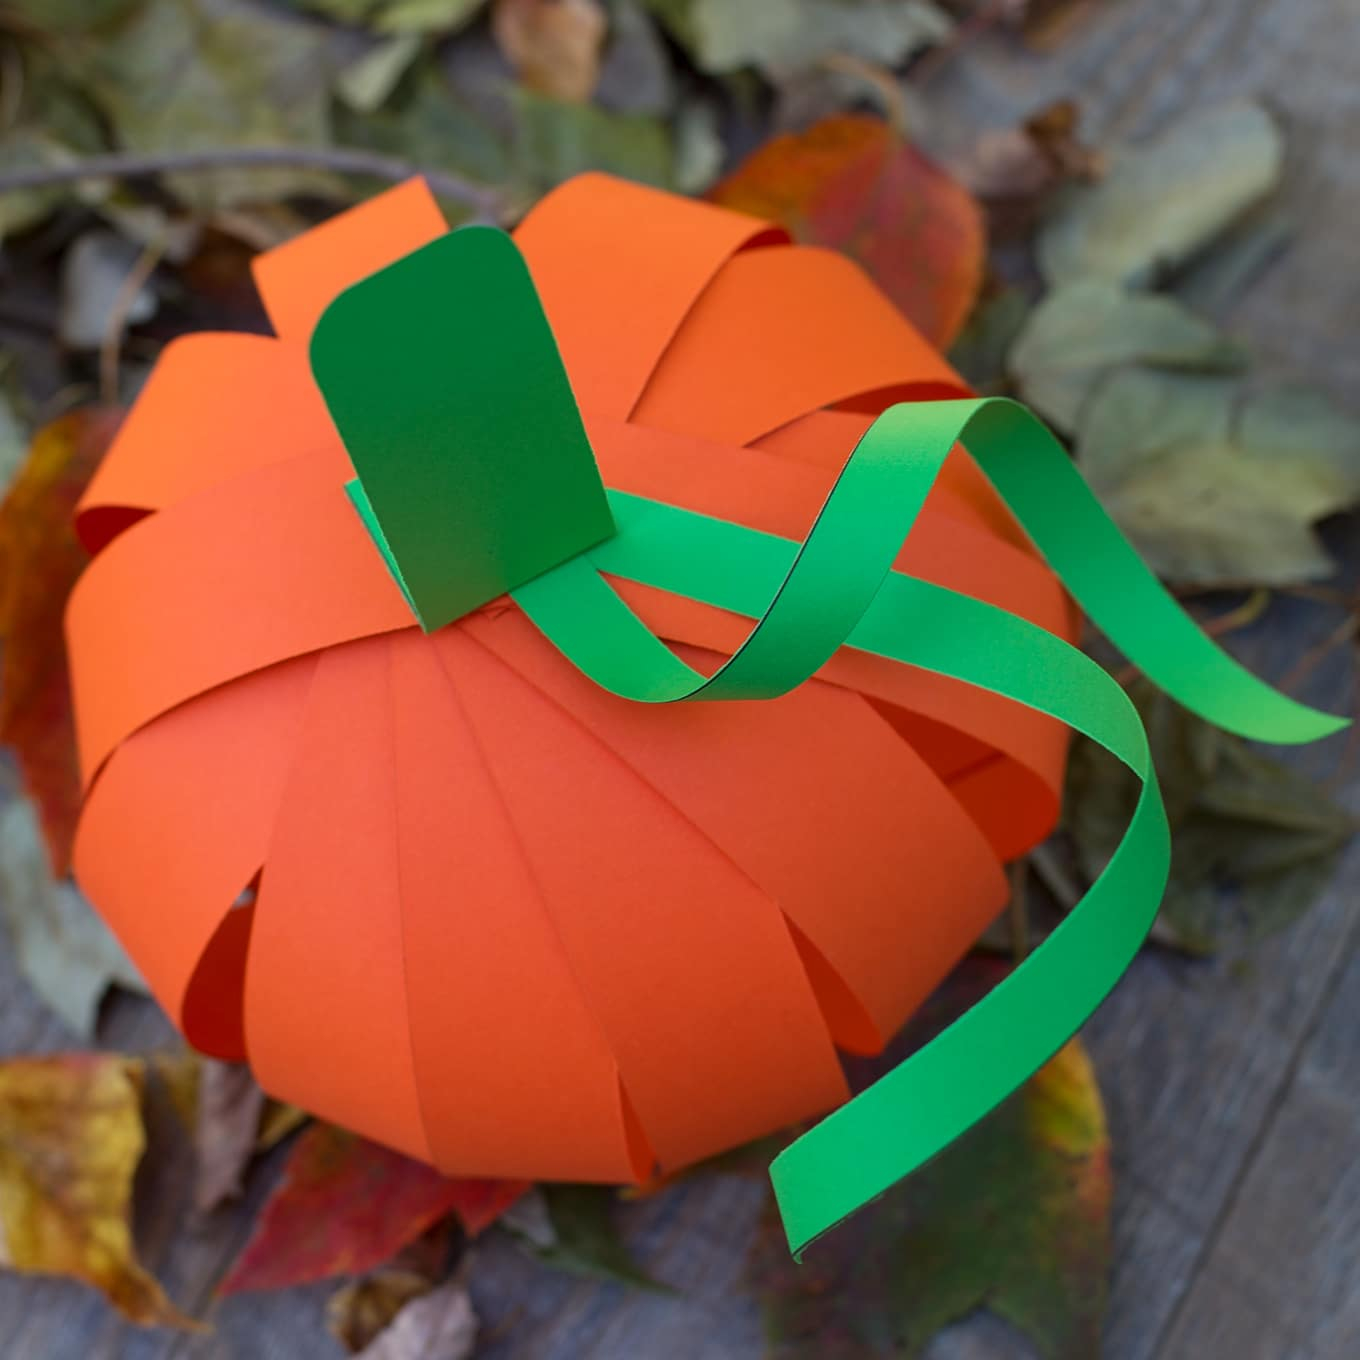 Creative ideas for pumpkin paper crafts design Easy Paper Strip Pumpkin Craft For Kids